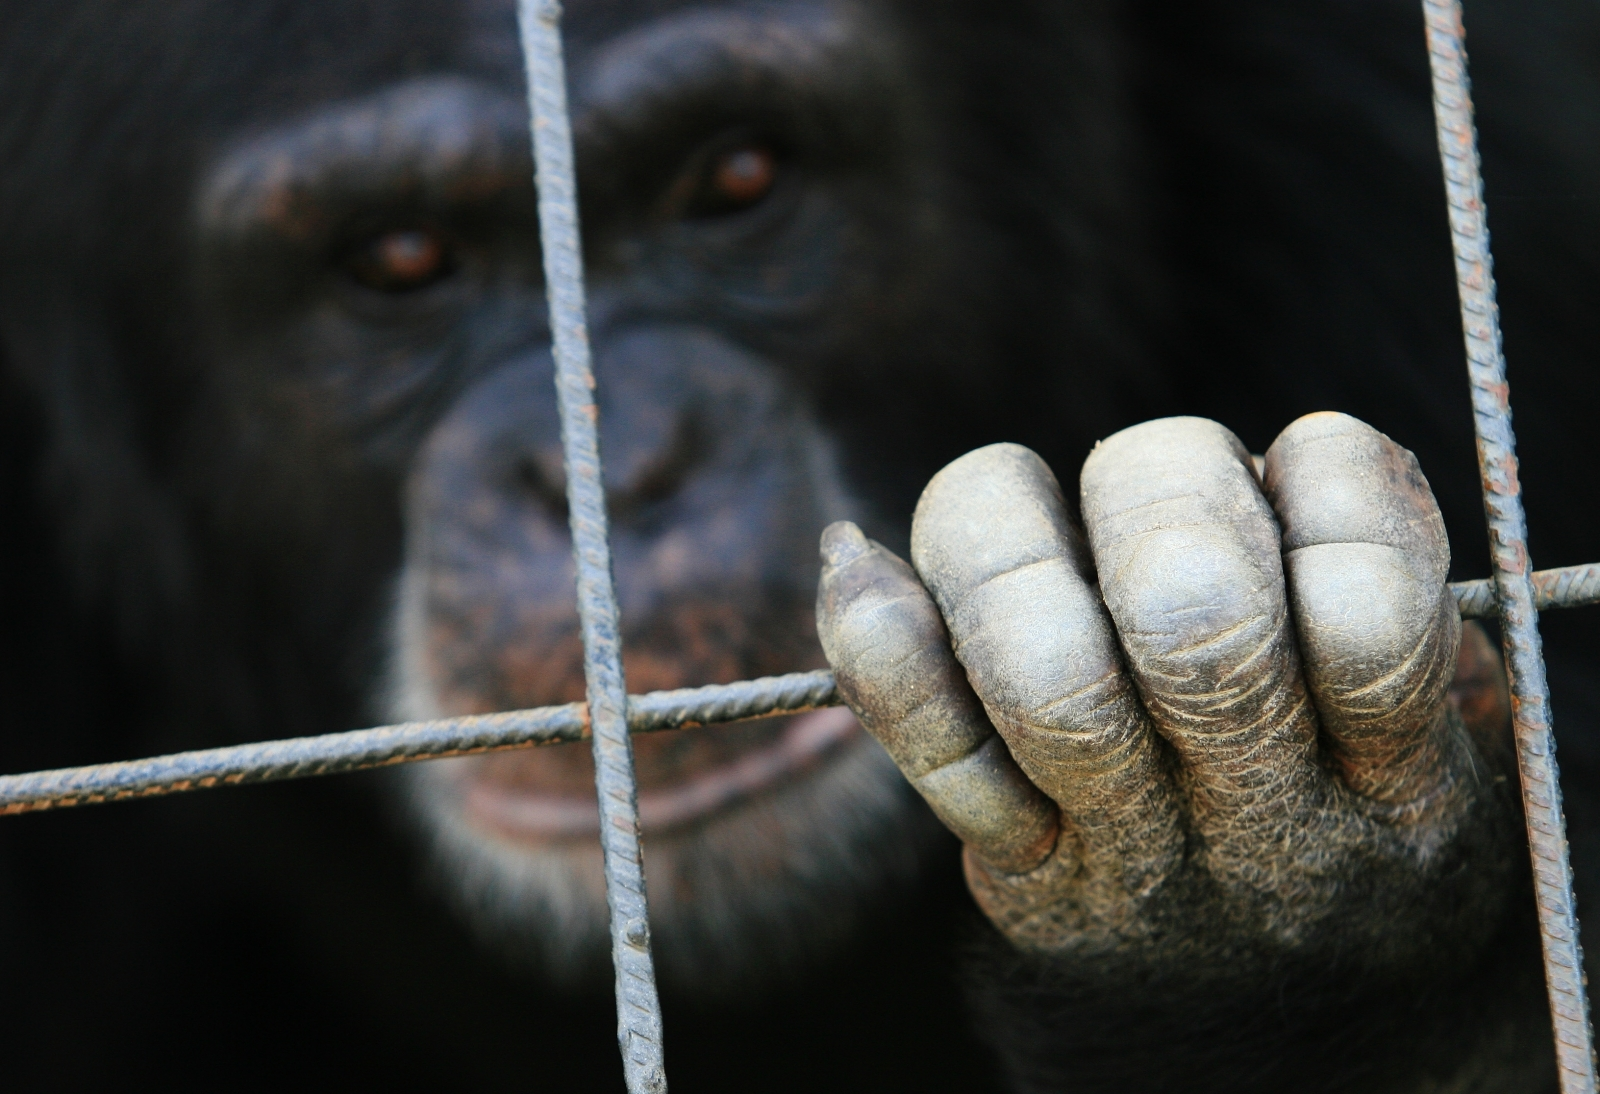 India chimpanzee birthday